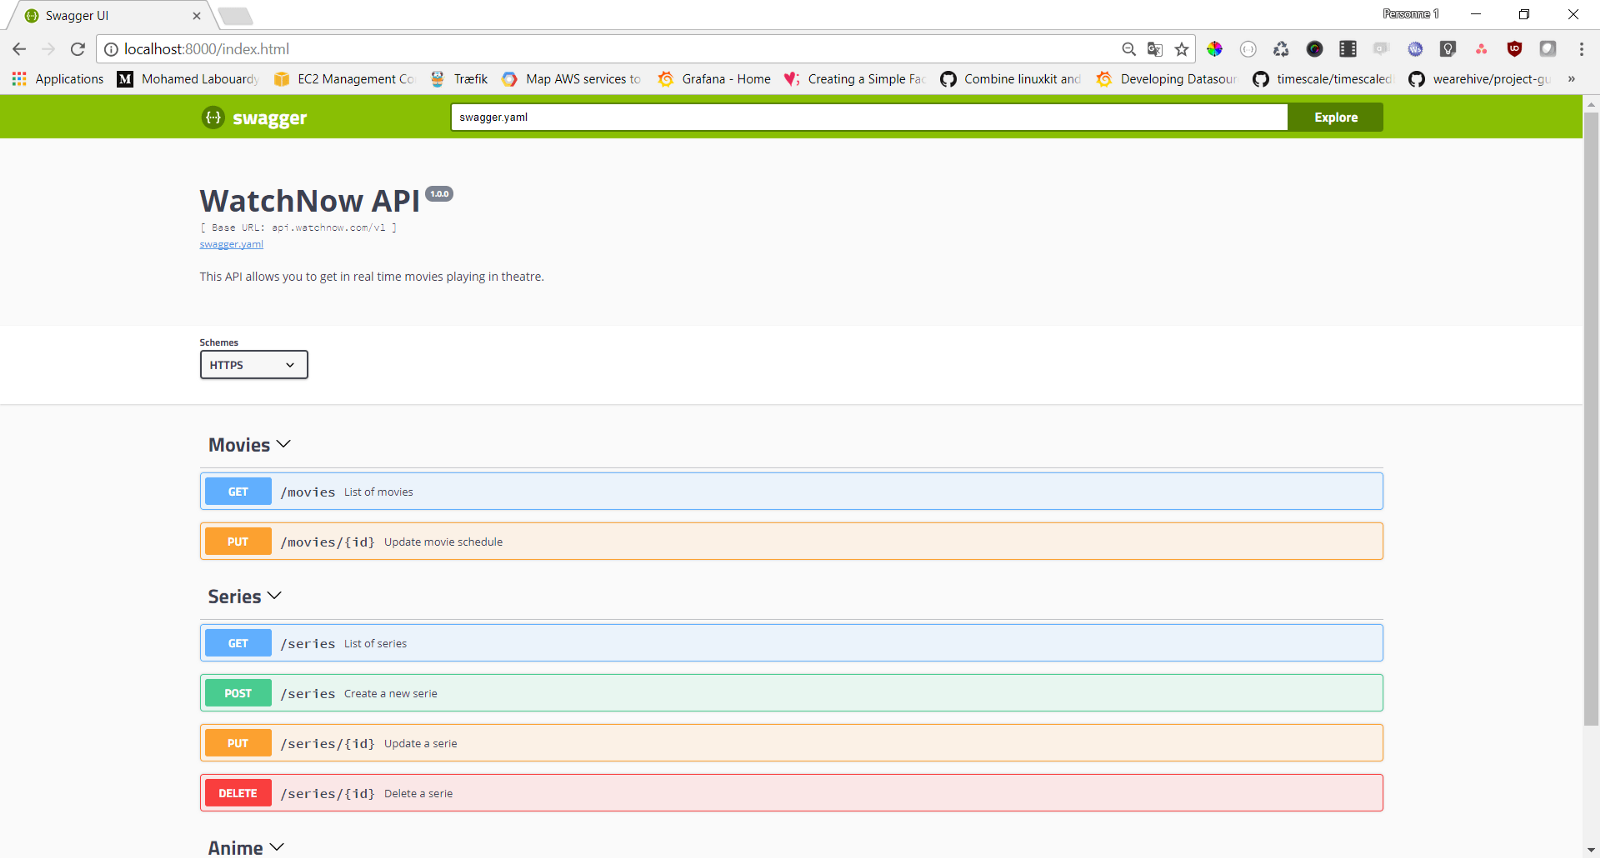 Generate beautiful Swagger API documentation from Insomnia - By